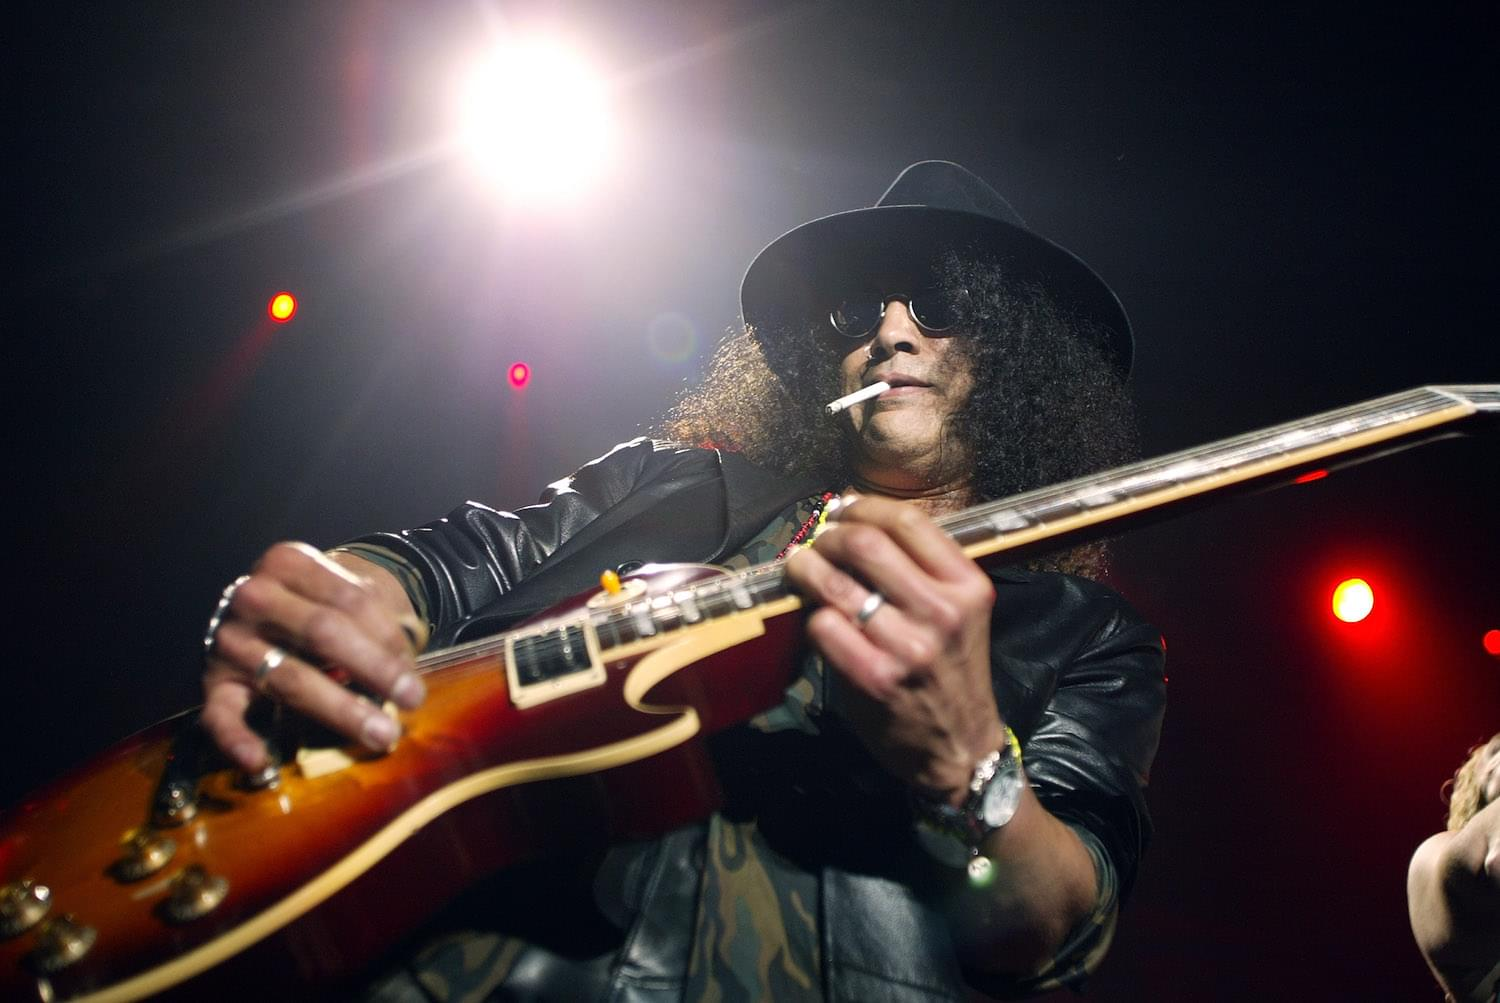 Guns N' Roses' 'Sweet Child O' Mine' Becomes First Music Video From the '80s to Hit 1 Billion YouTube Views